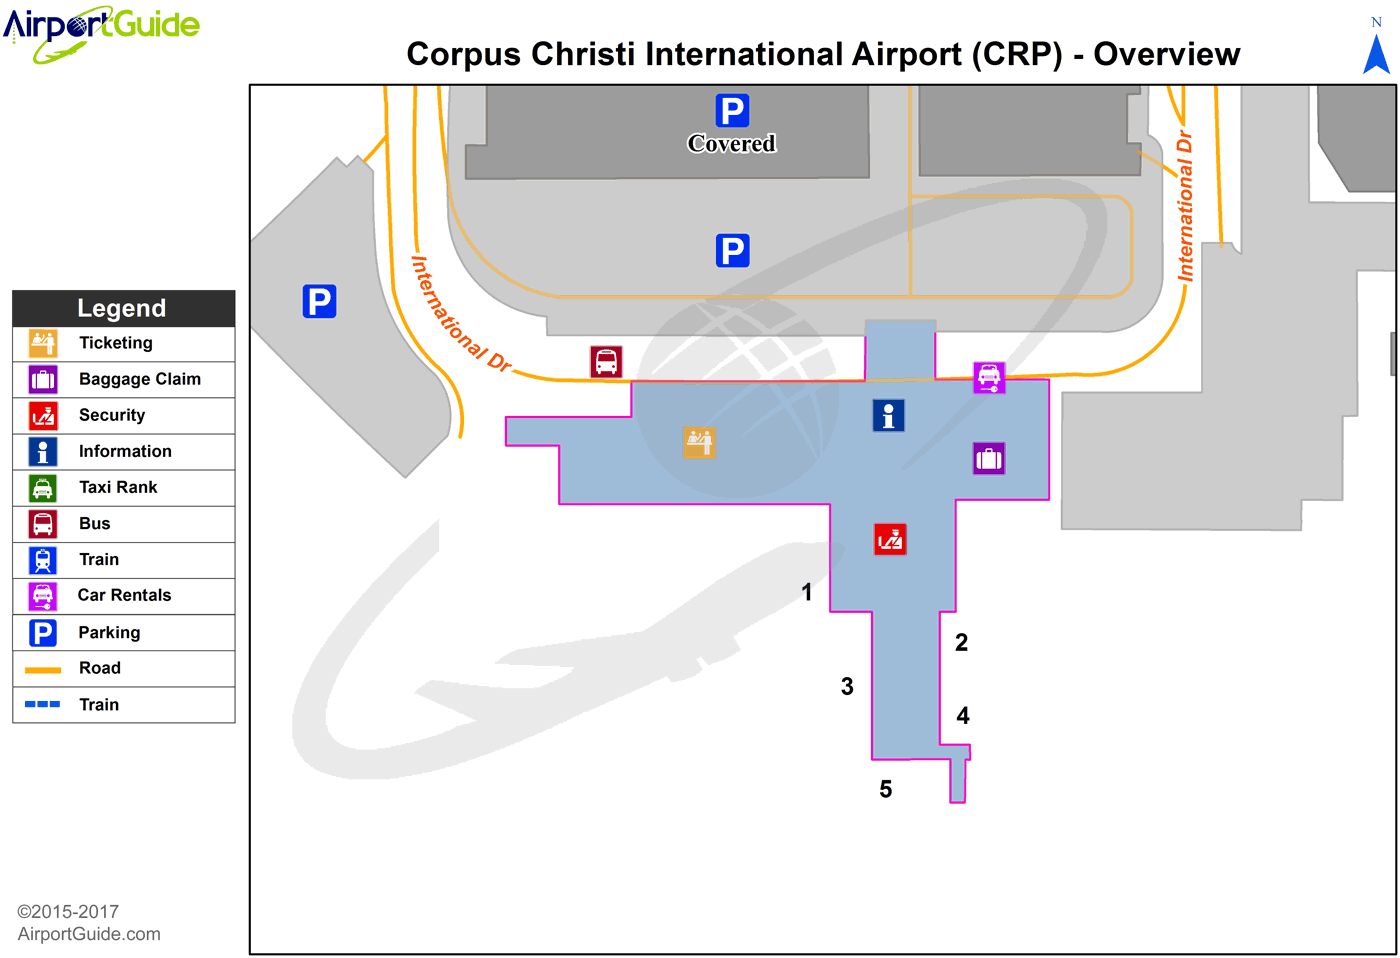 Corpus Christi - Corpus Christi International (CRP) Airport Terminal Map - Overview